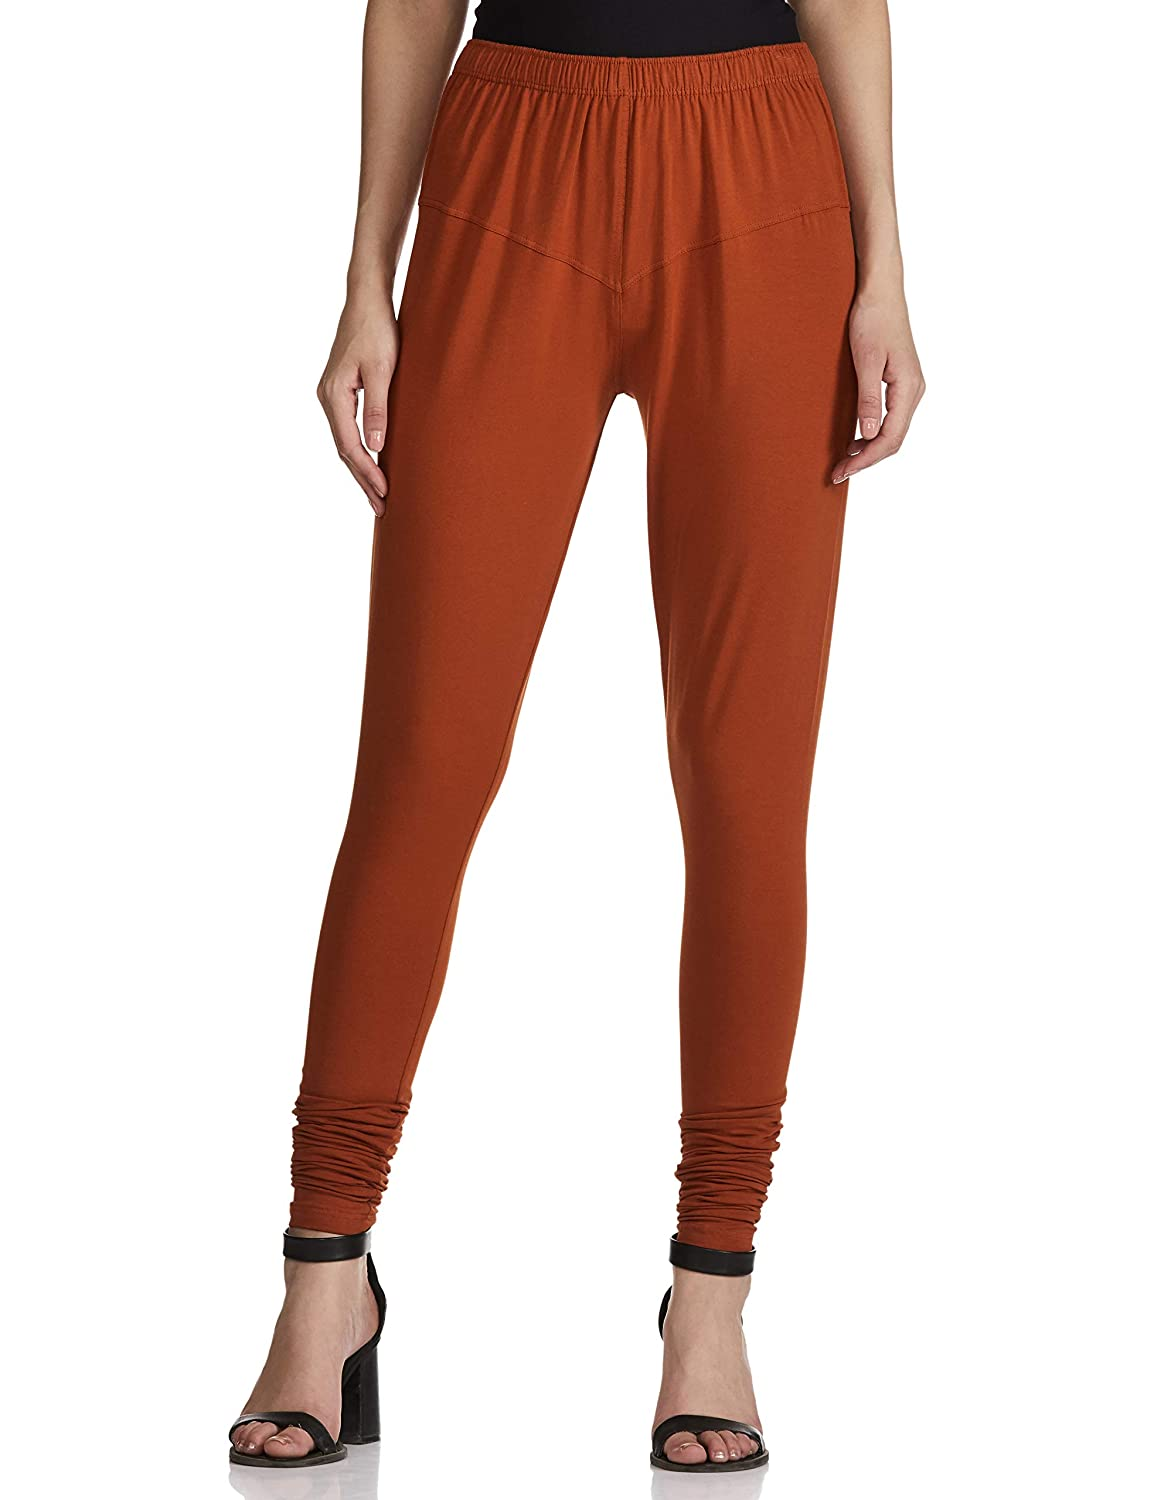 LUX LYRA Women's Leggings Silk_36_Dark Rust_Free Size